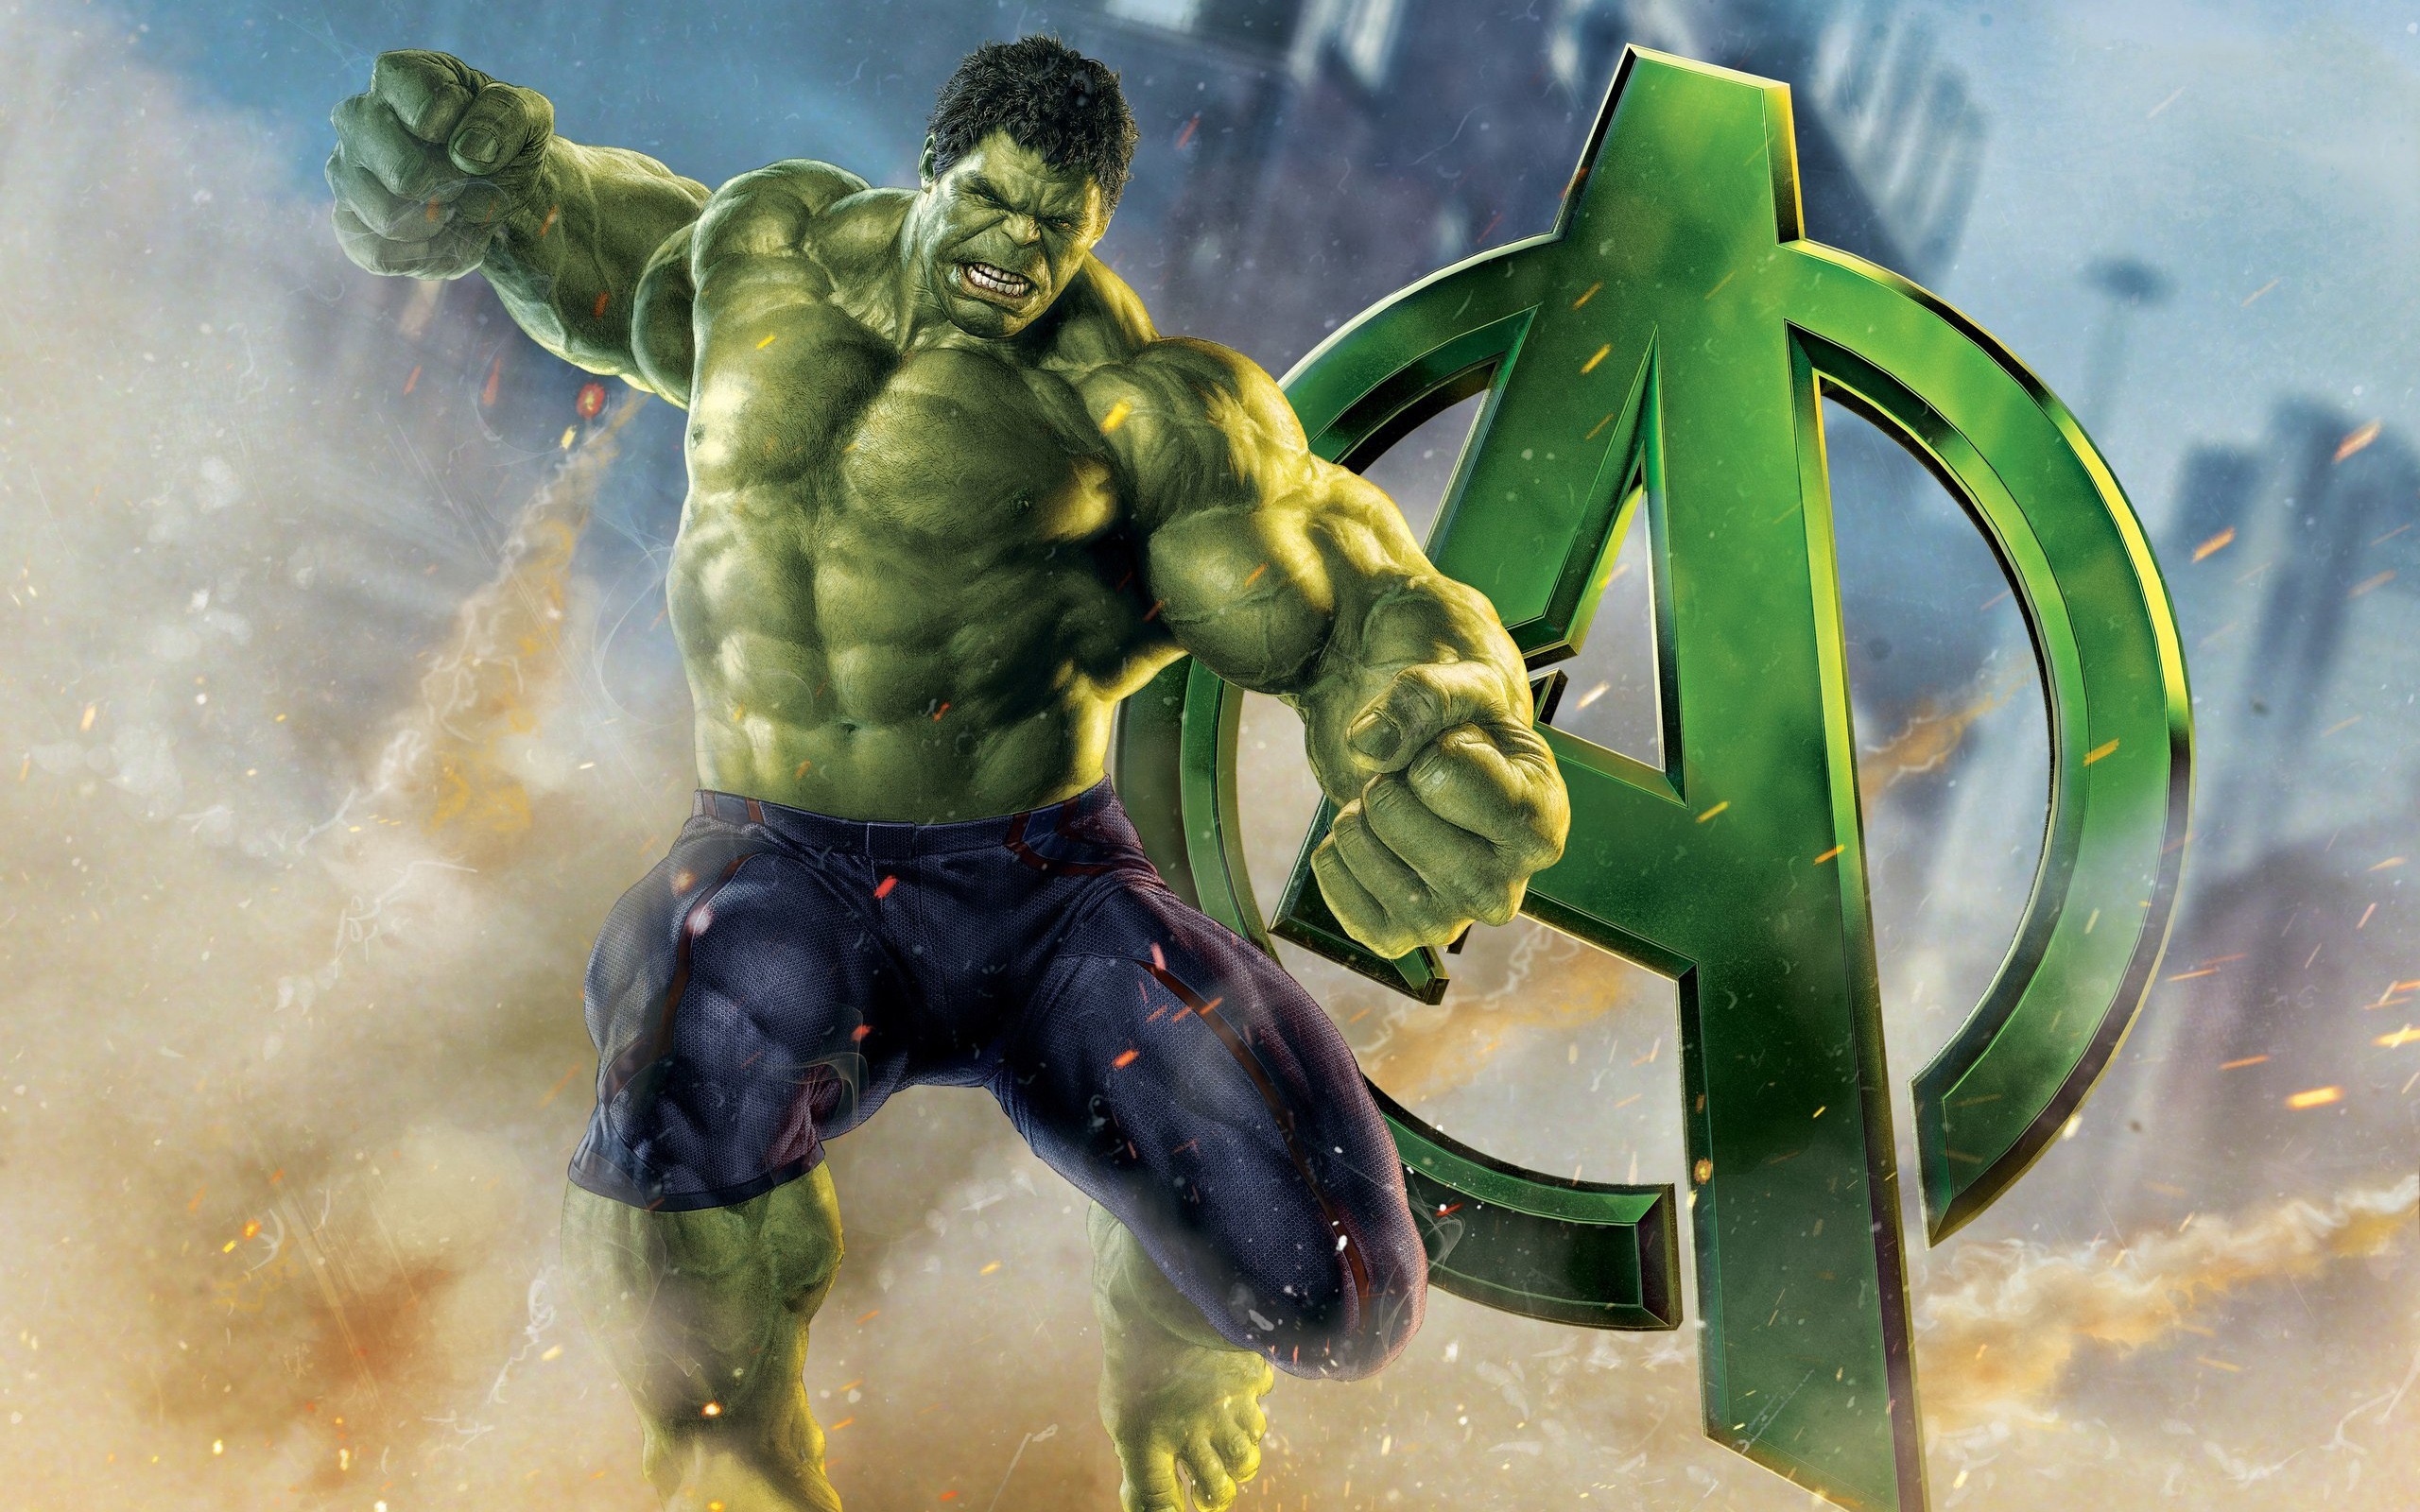 Avengers Hulk HD Movies 4k Wallpapers Images Backgrounds